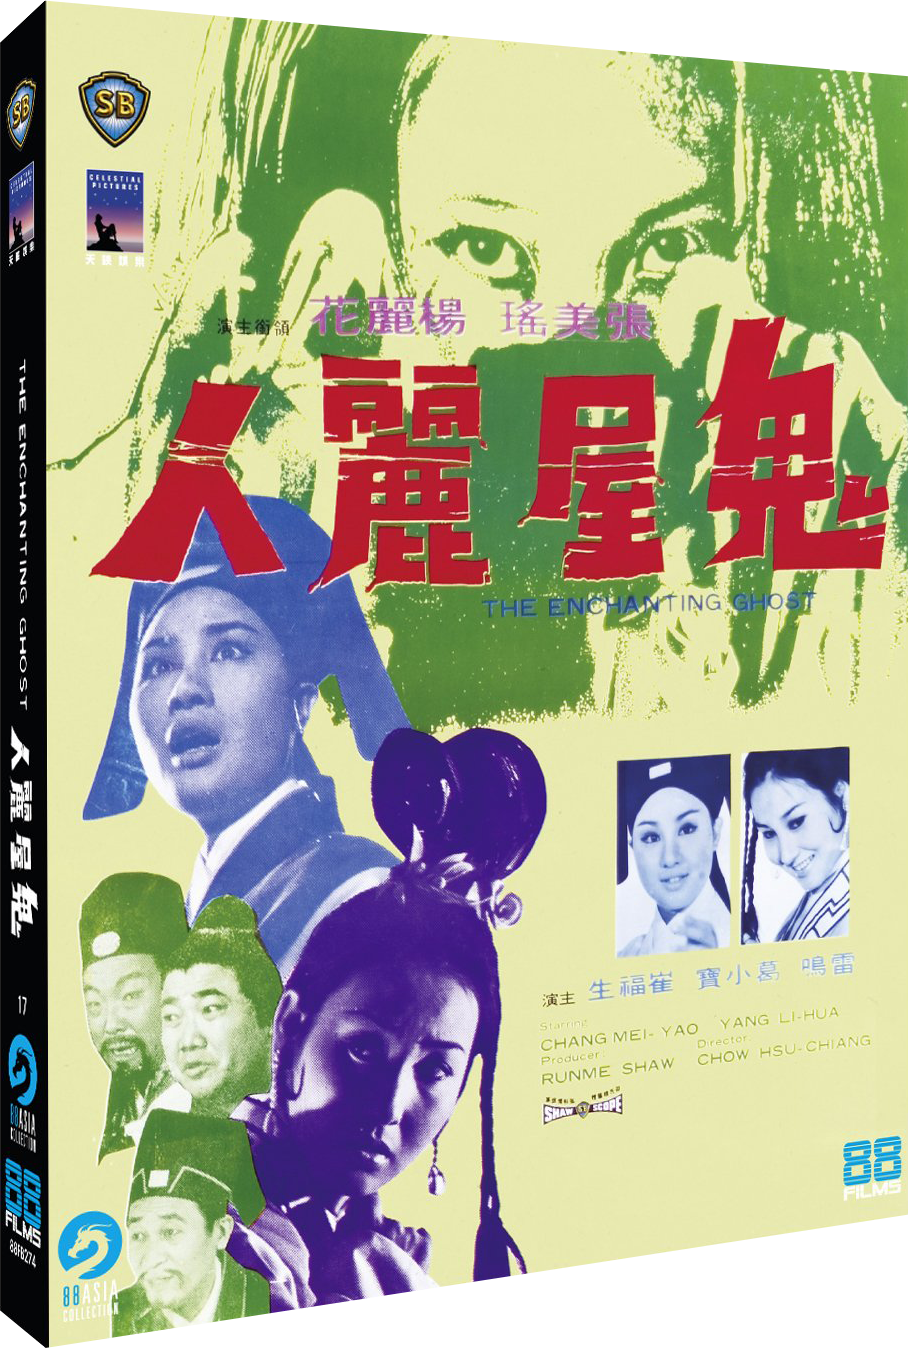 The Enchanting Ghost (88 Asia) Available Now on Blu-ray and DVD from 88 Films